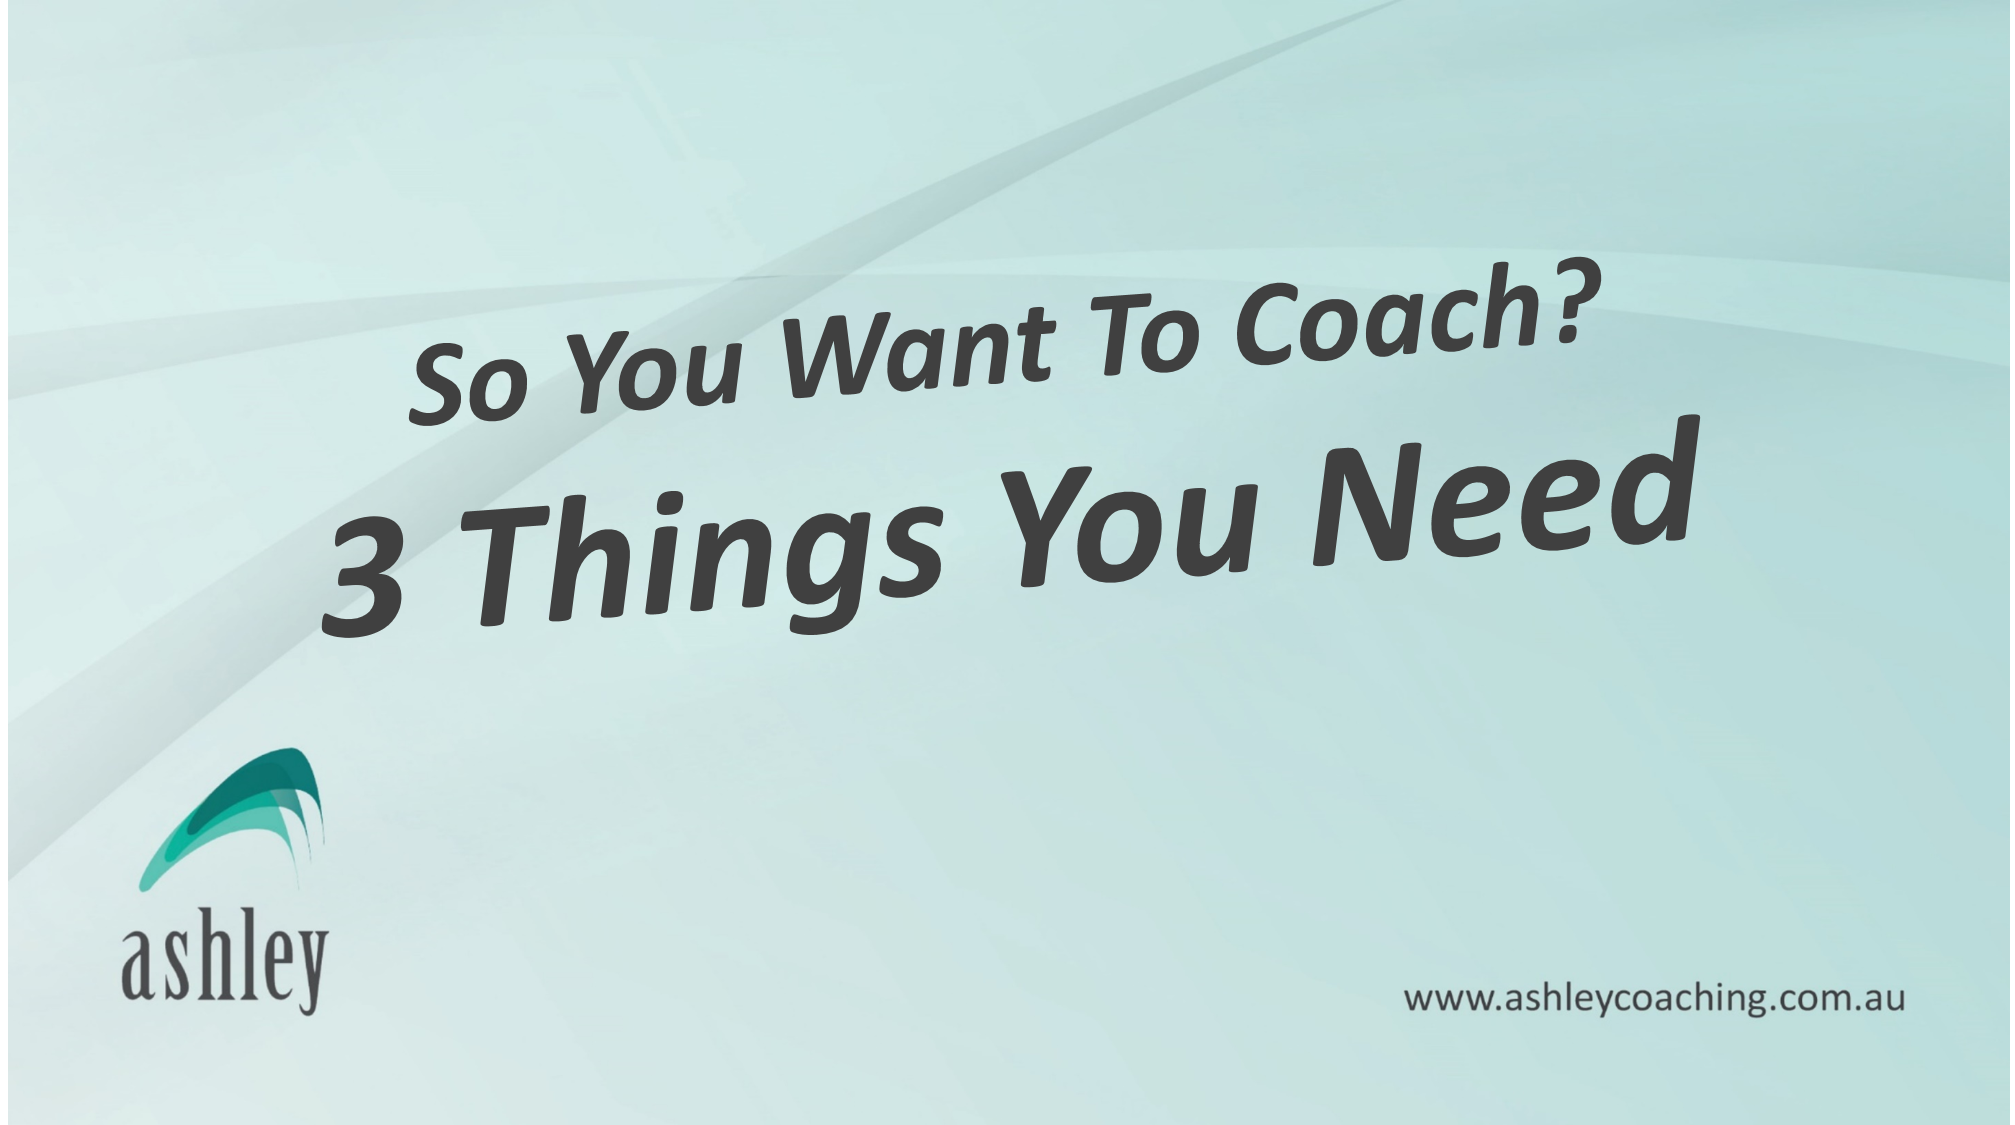 So You Want To Coach? 3 Things You Need